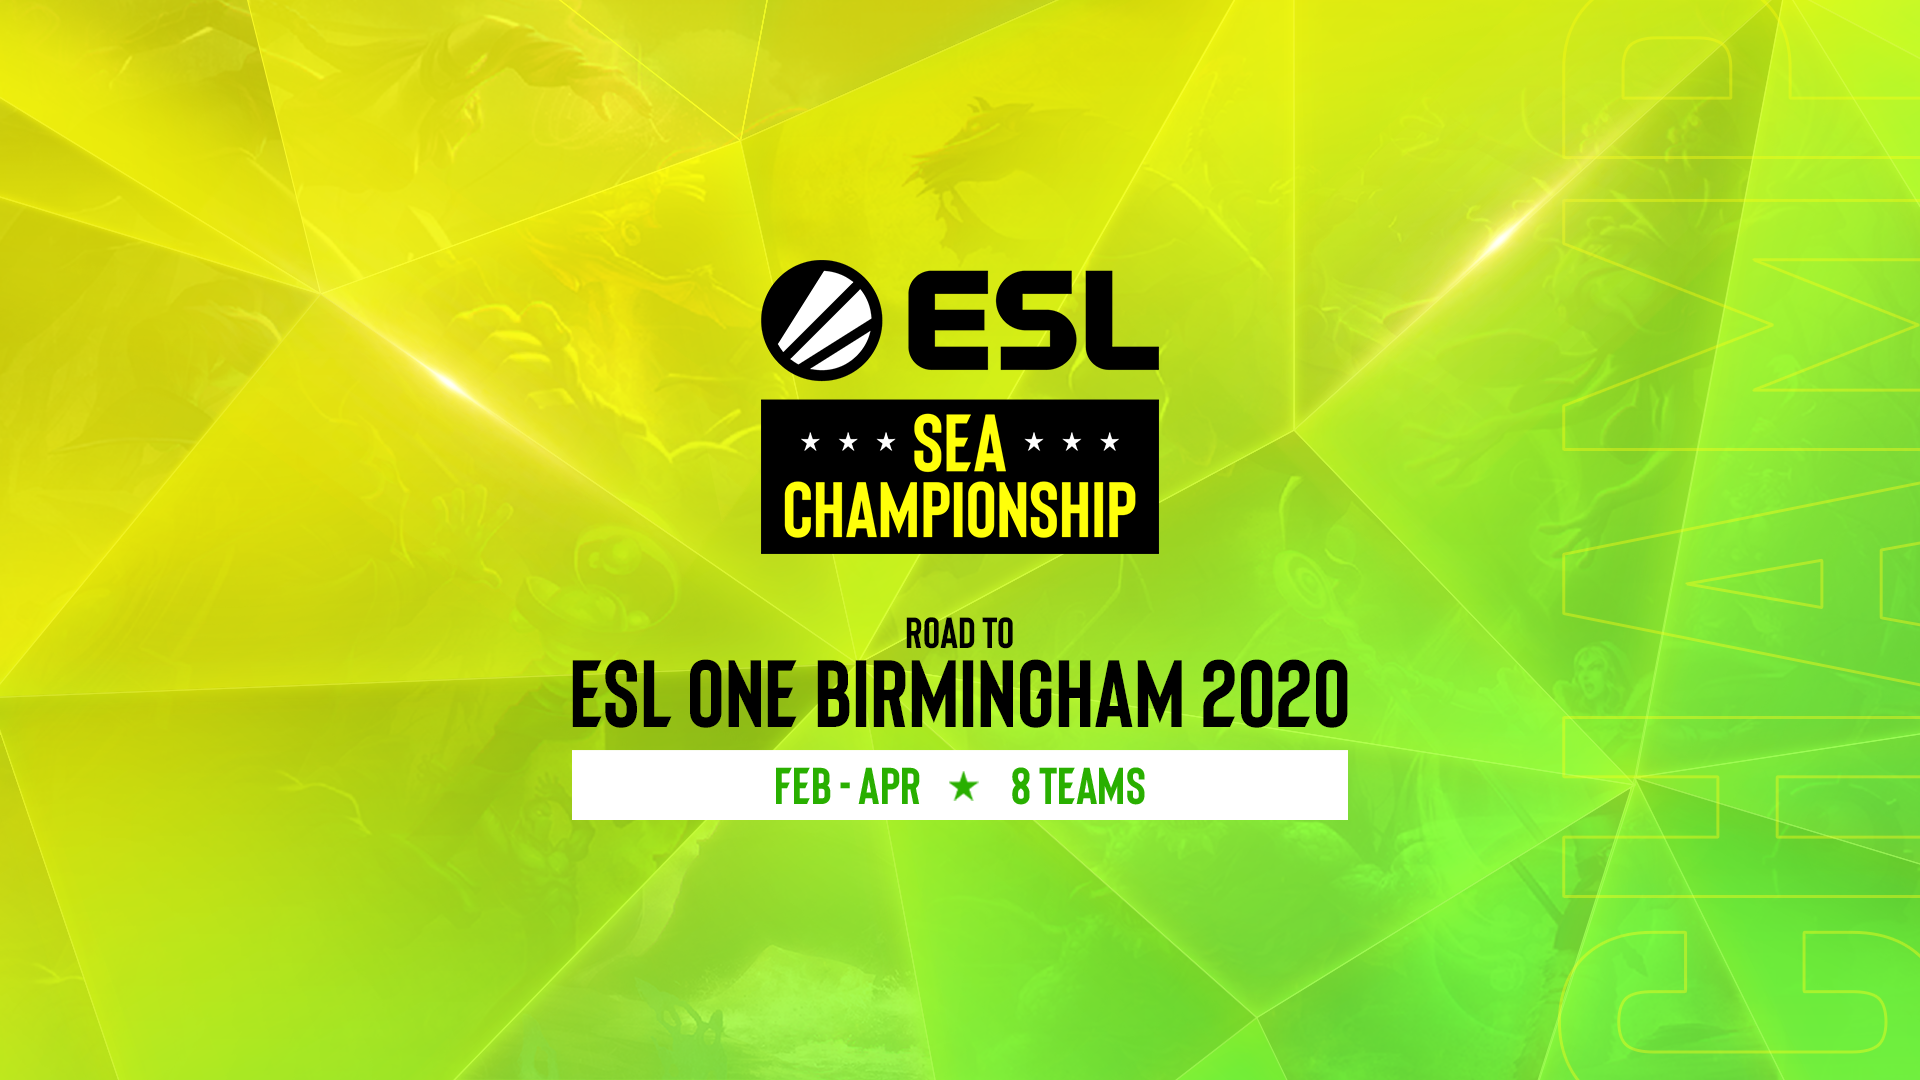 ESL Asia introduces the ESL SEA Championship for Dota 2